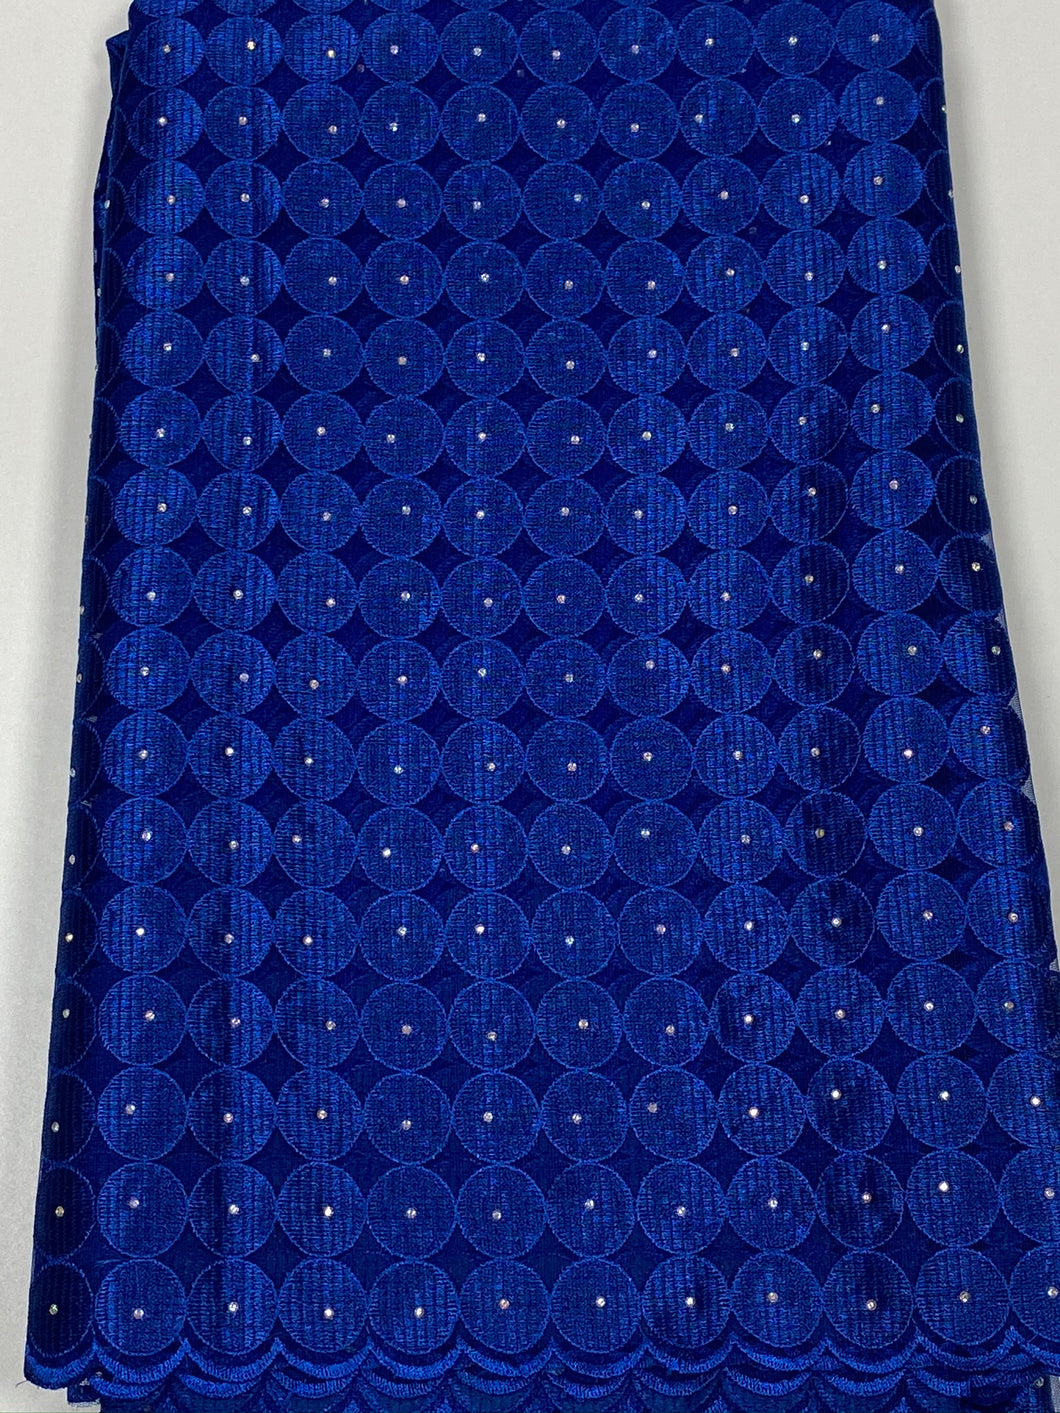 Royal Blue French Cord Lace - 5 Yards